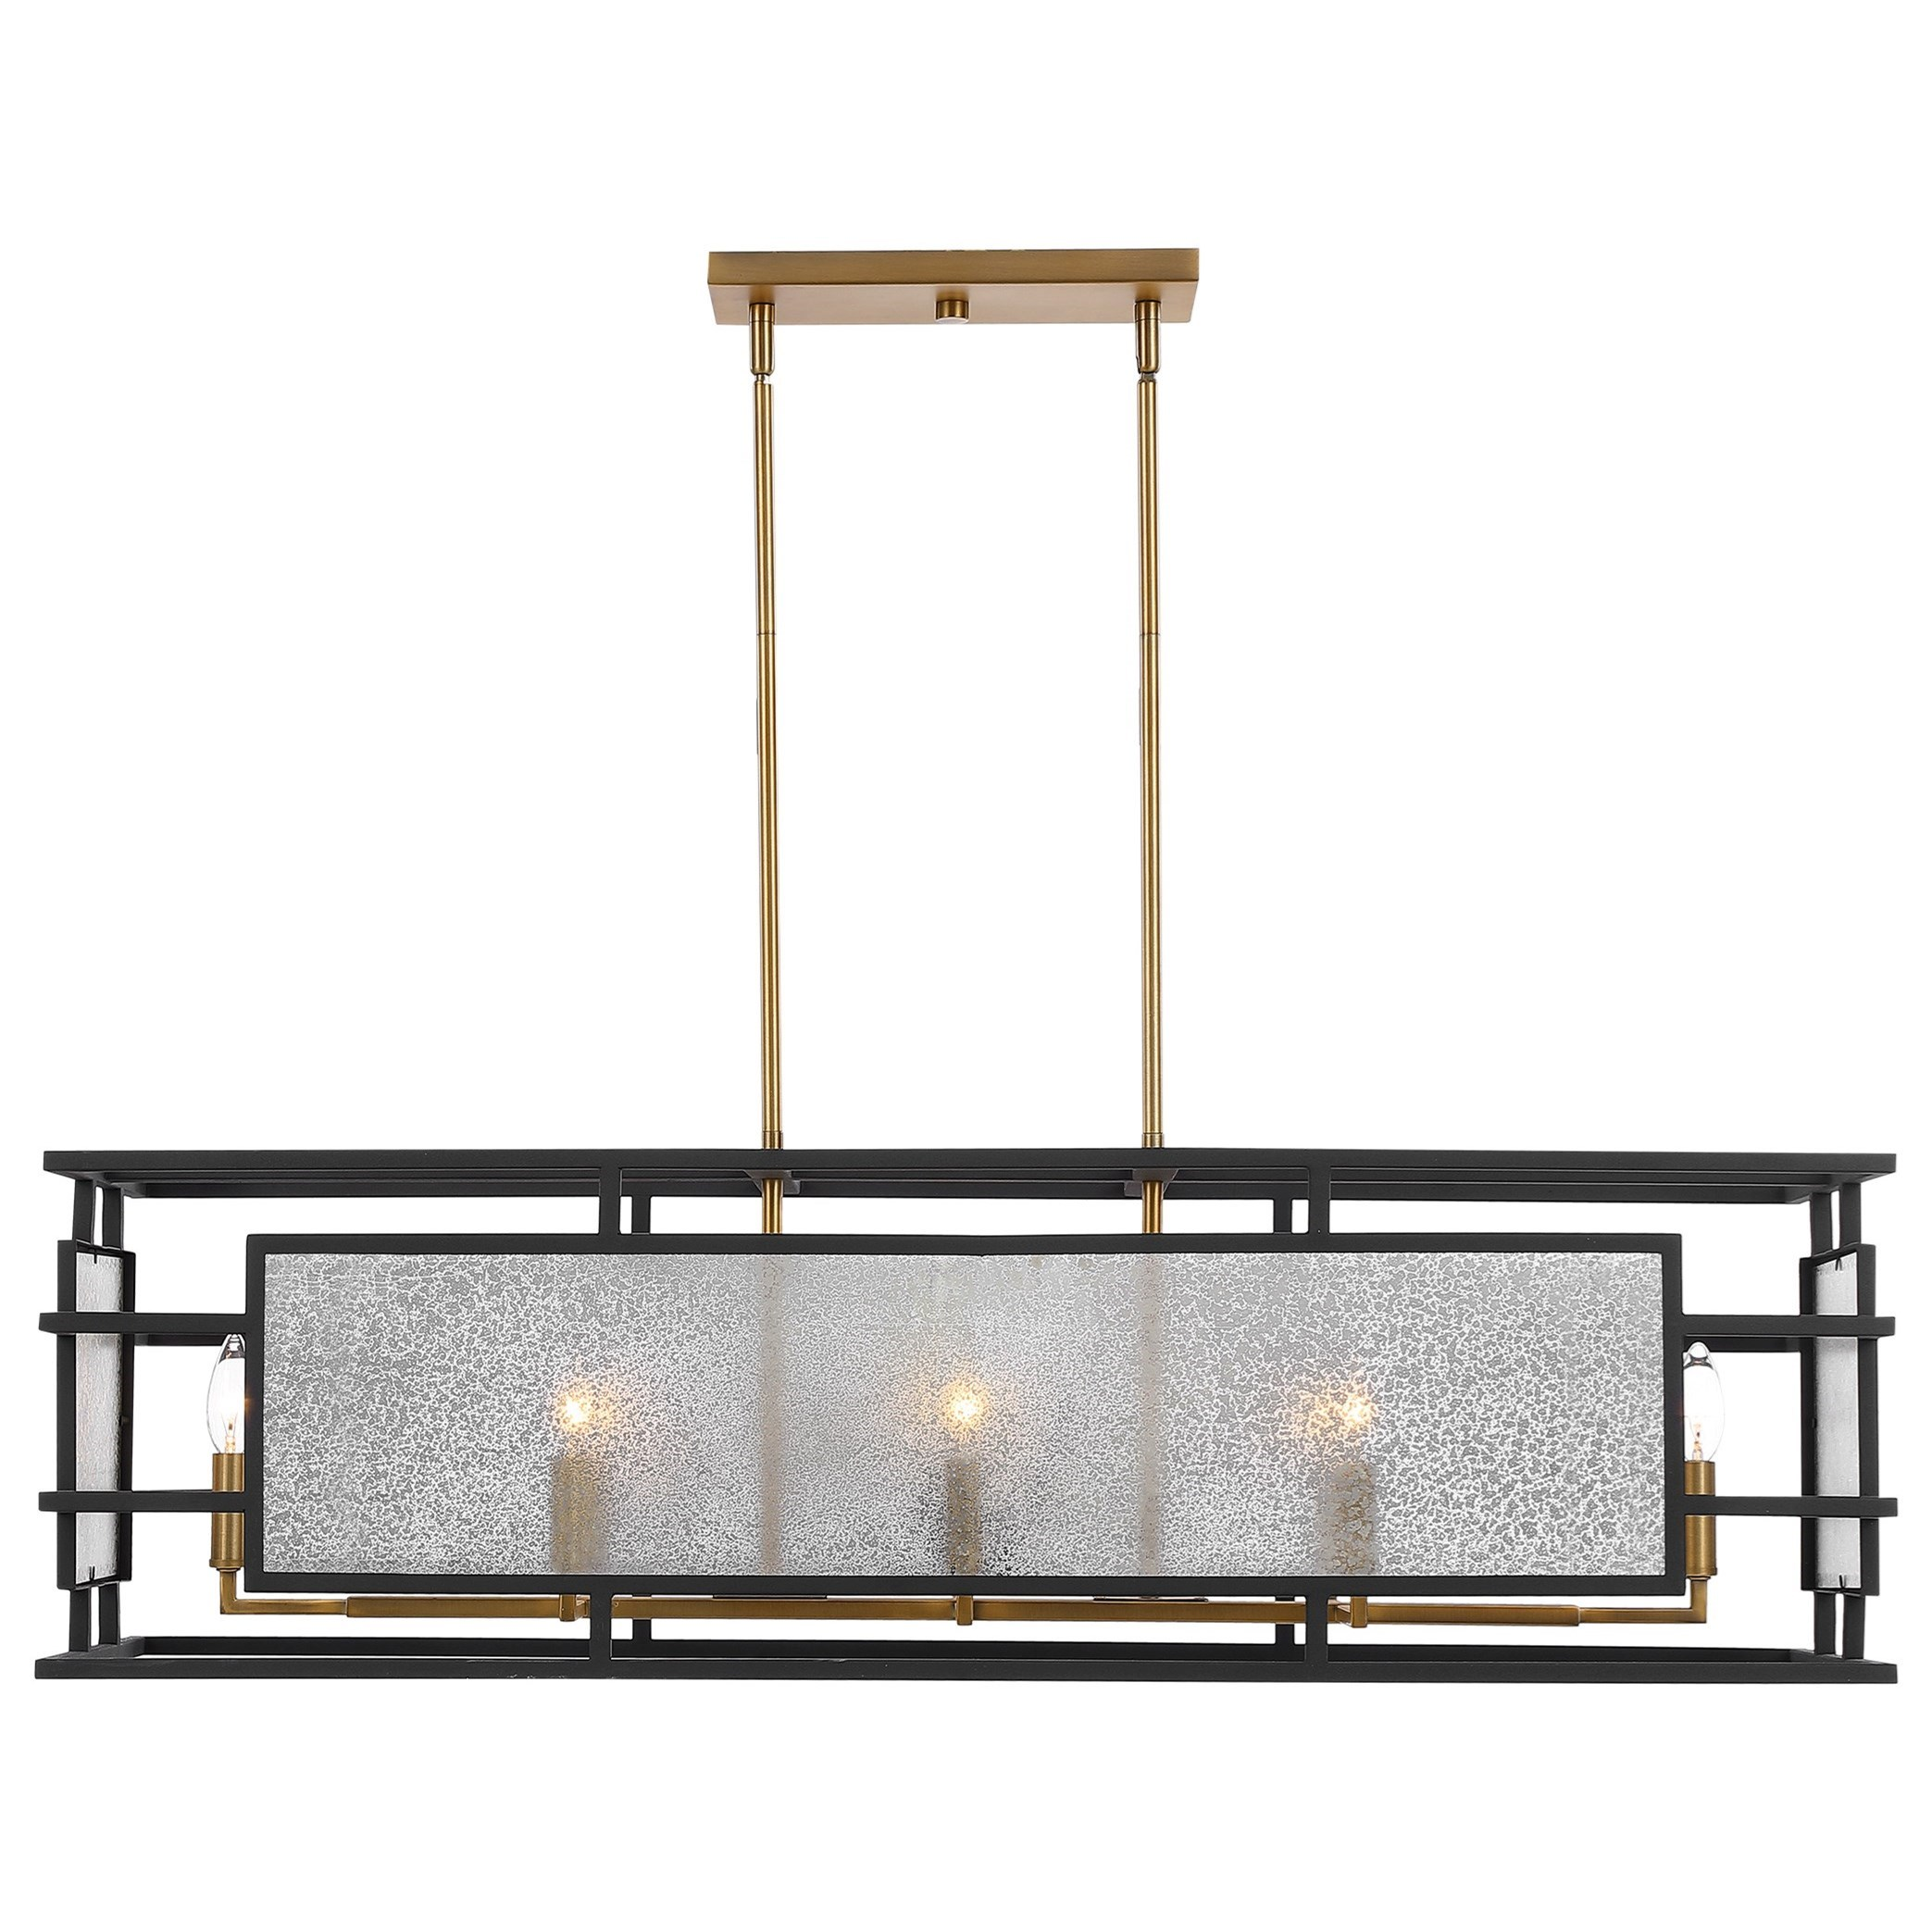 Lighting Fixtures - Chandeliers Holmes 8 Light Linear Chandelier by Uttermost at Esprit Decor Home Furnishings